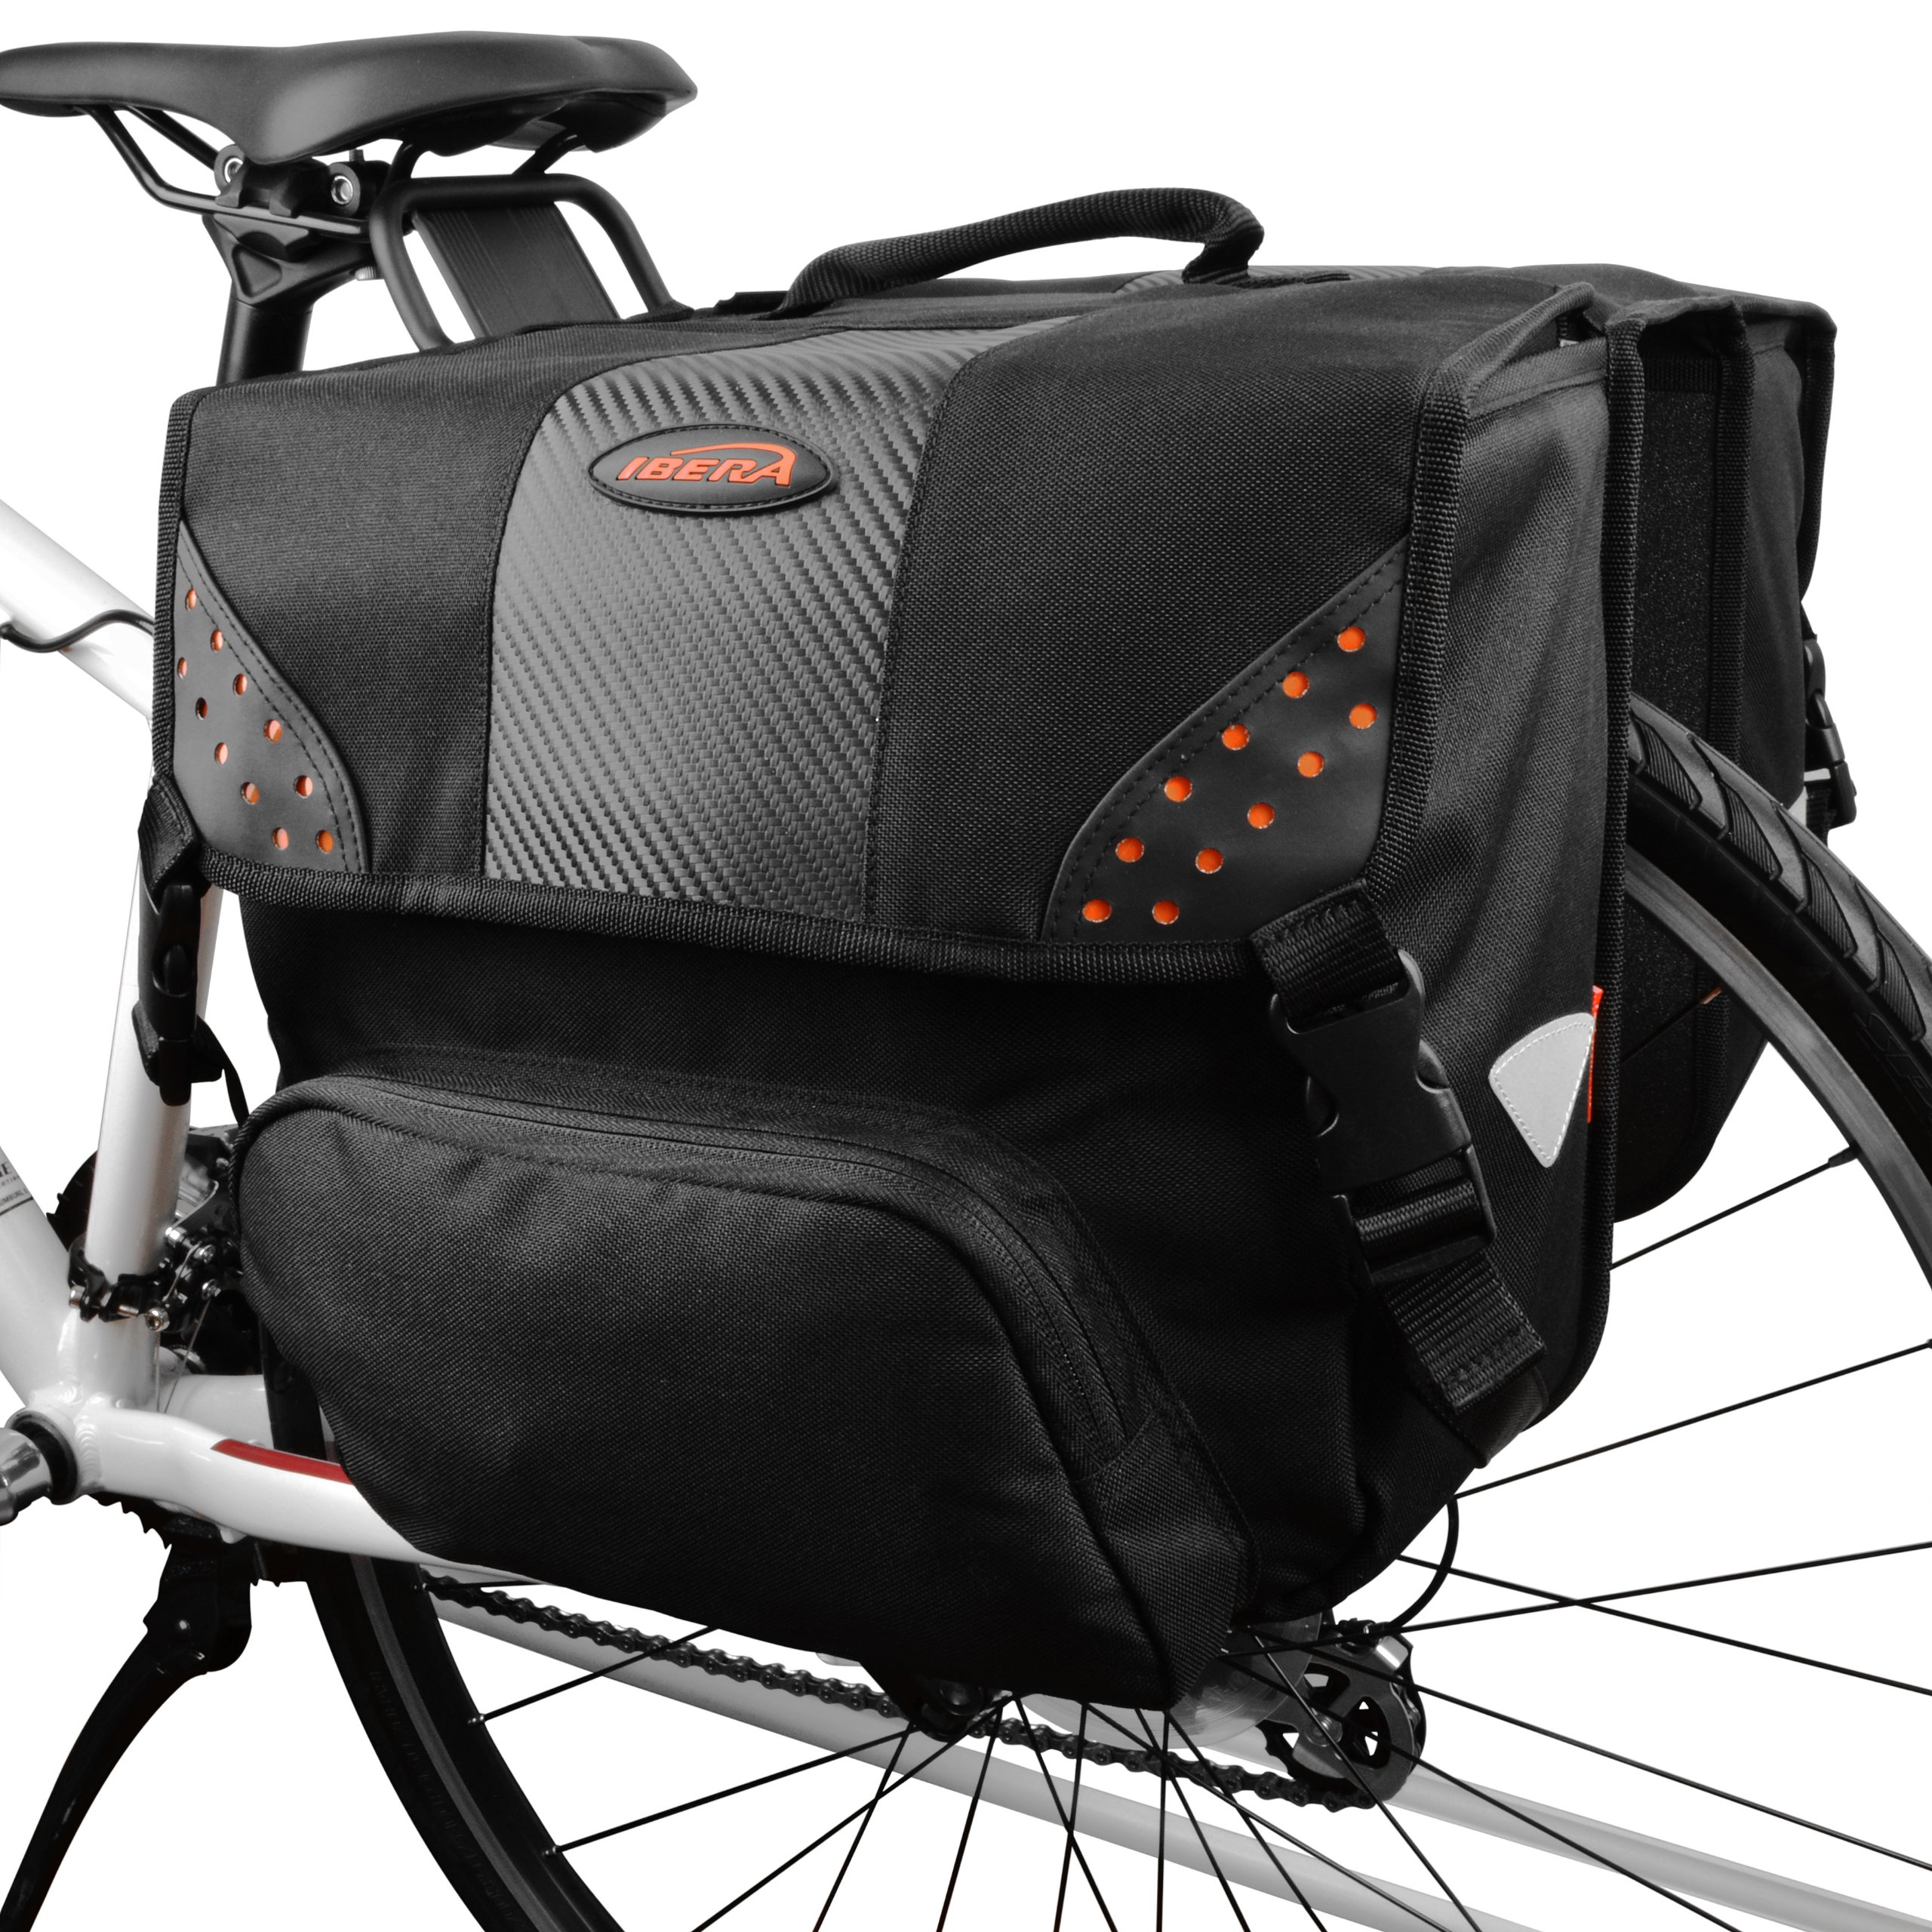 Ibera Bicycle Side-Mounting Pannier Set, Bike Panniers with Multi-Compartments, Slit on Top to Mount on Smaller Racks  by Ibera (Image #1)